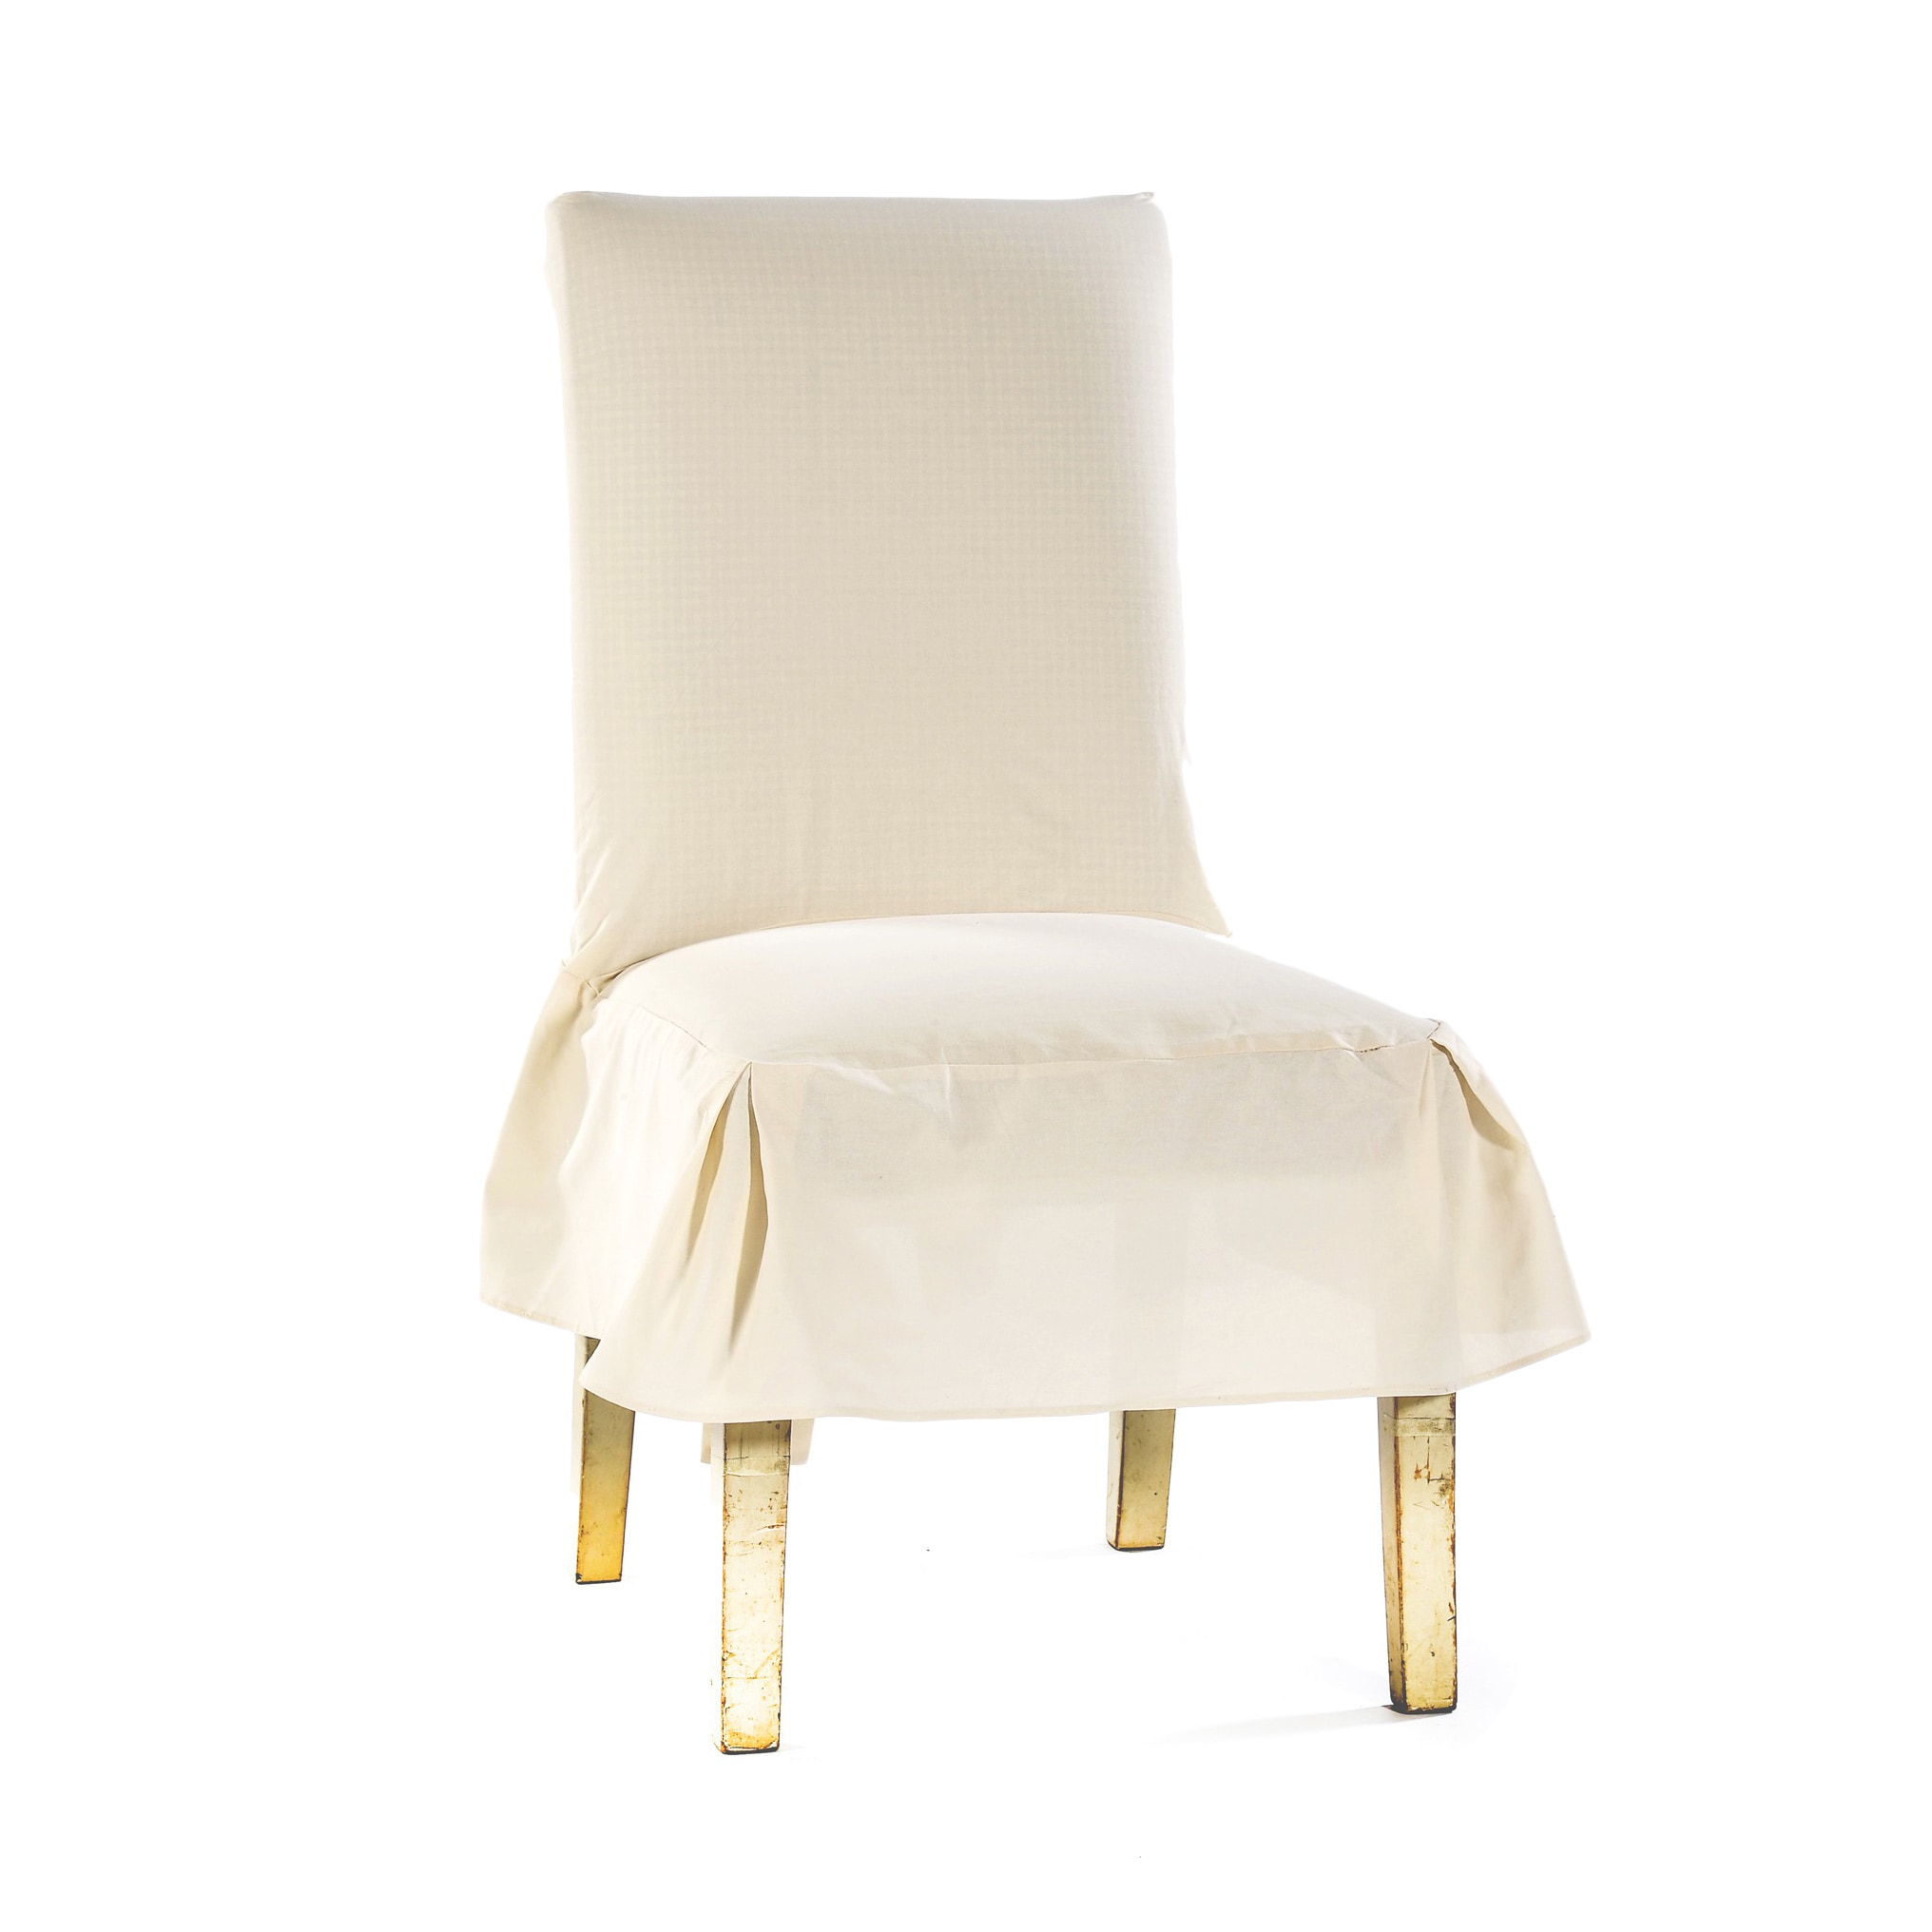 dining chairs slipcovers old wooden high chair shop classic cotton duck set of 2 free shipping on orders over 45 overstock com 6677953